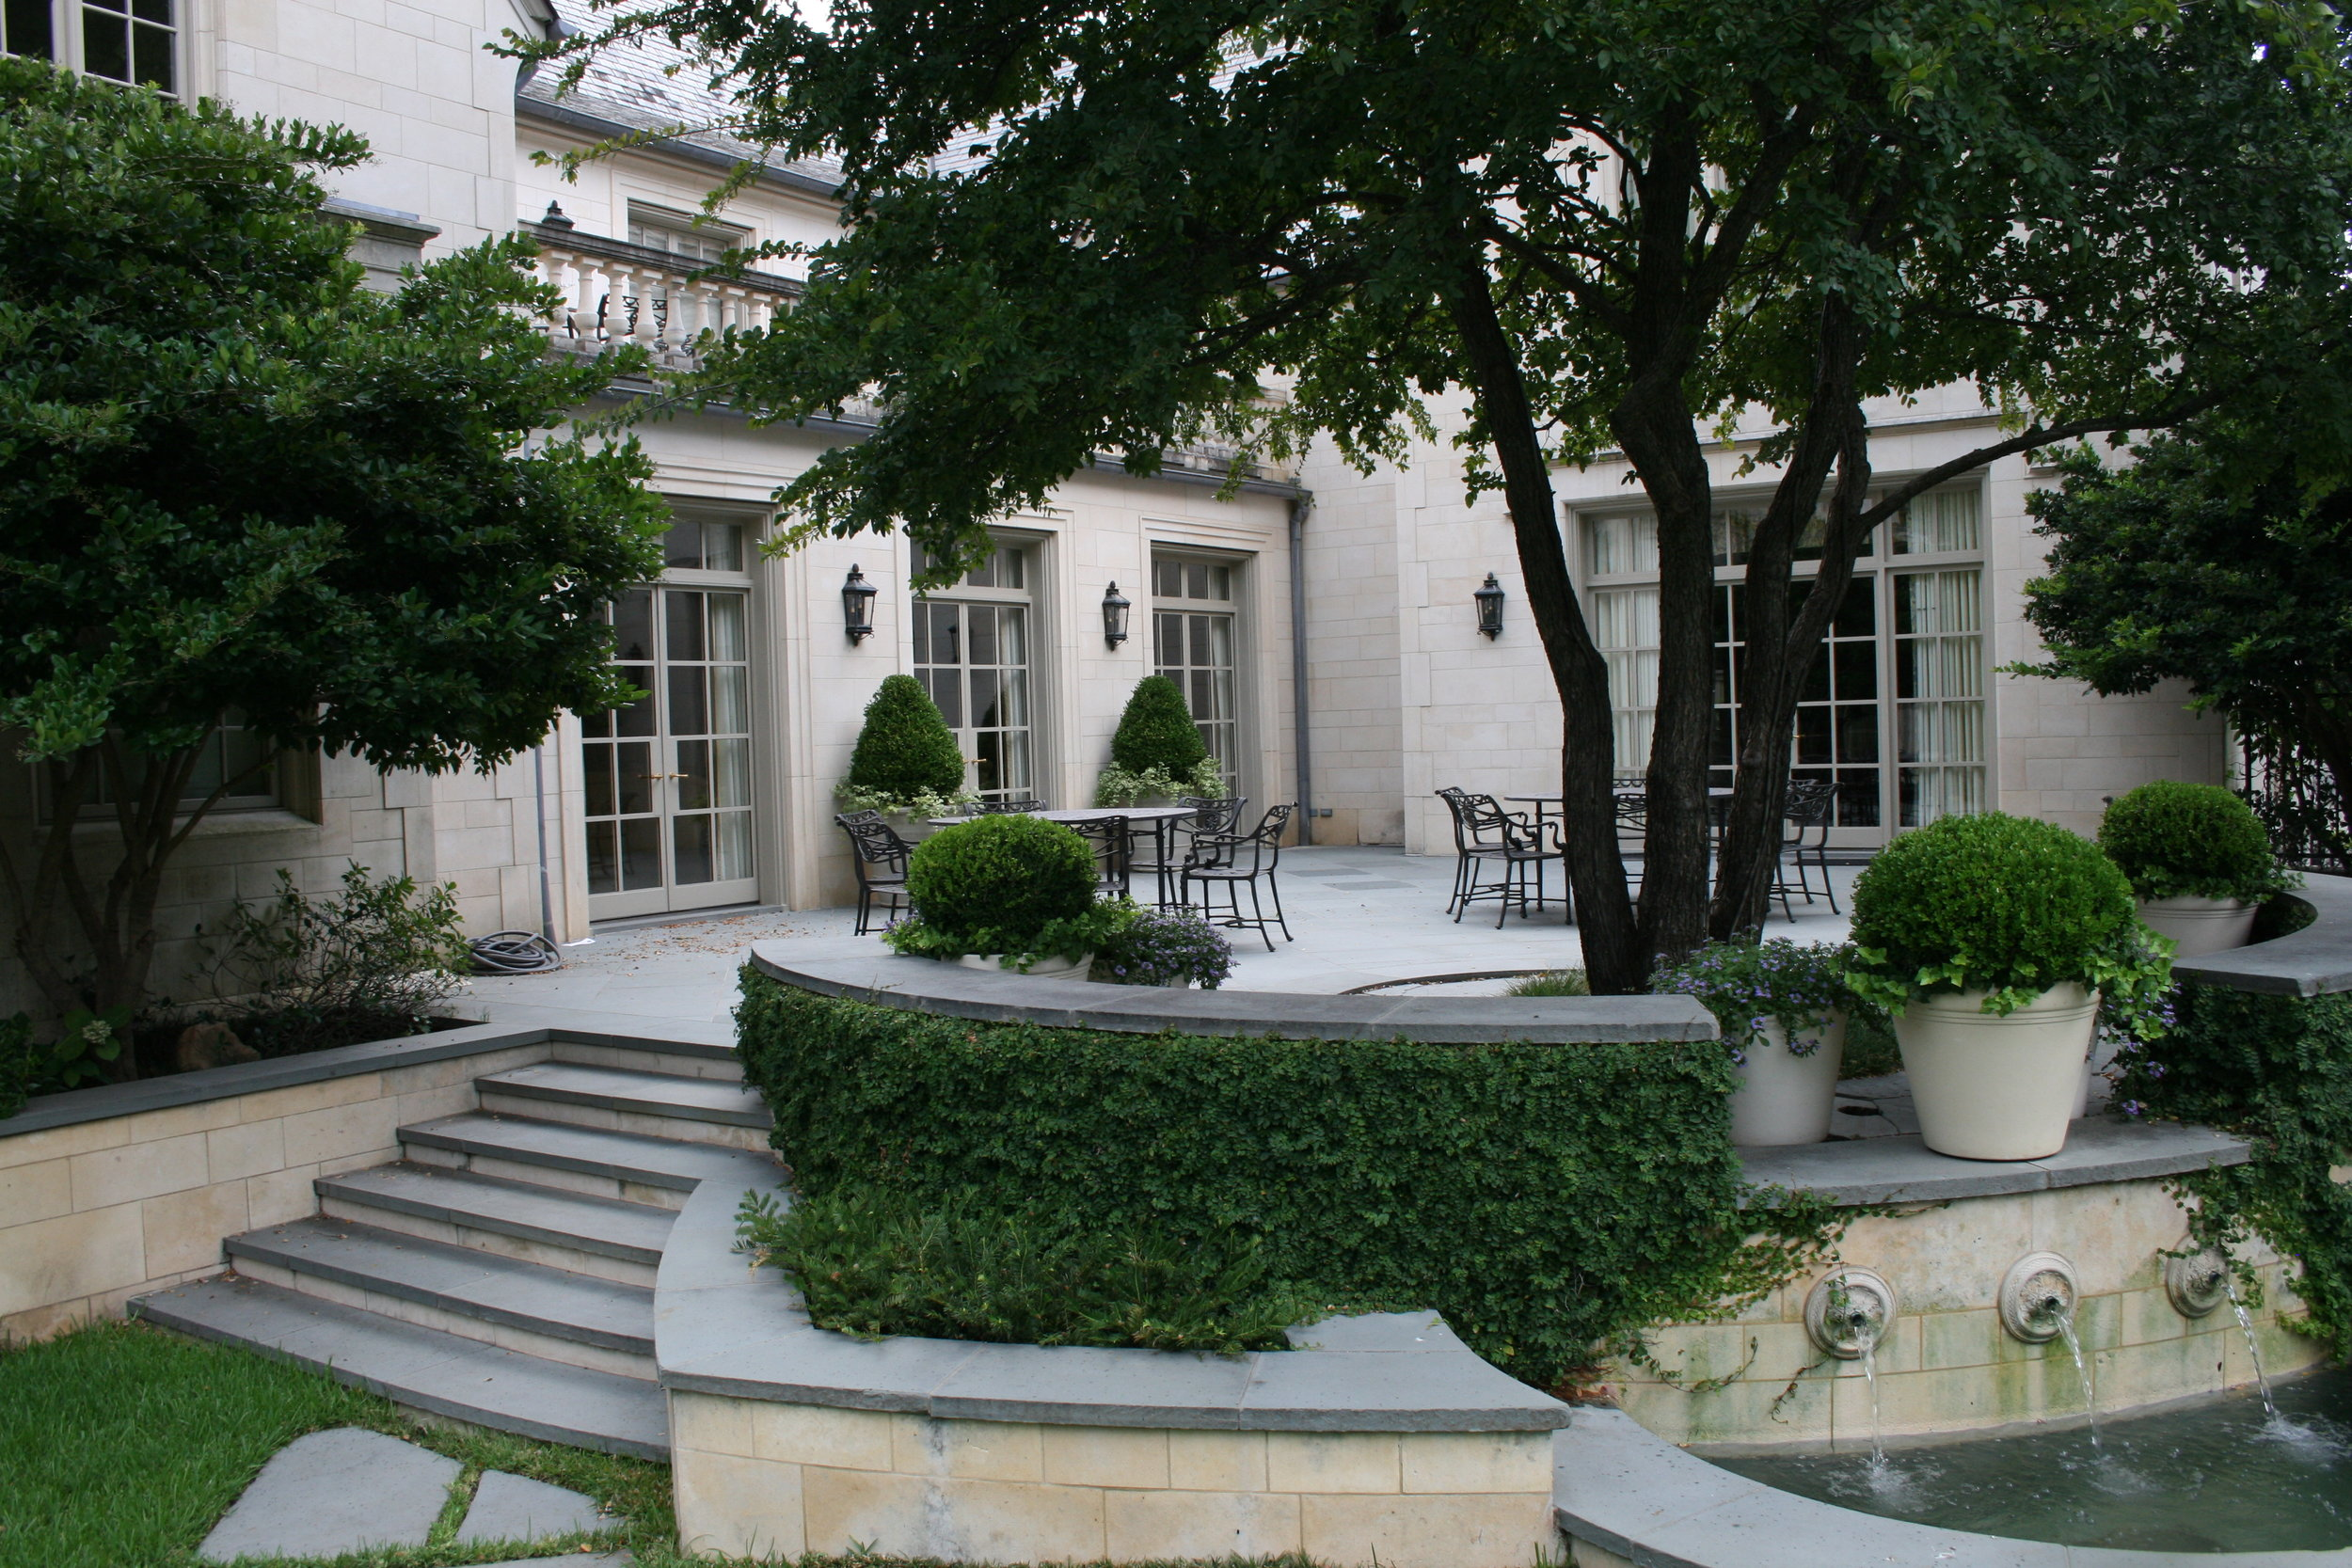 Fountains and abundant greenery give a restful quality to this Neoclassical outdoor area. Paul Turney was the architect for this home, while the landscape architect was  John Armstrong.  (This image is copyright of  Turney & Associates, Inc . Chambers Interiors & Associates was given permission to feature this image).